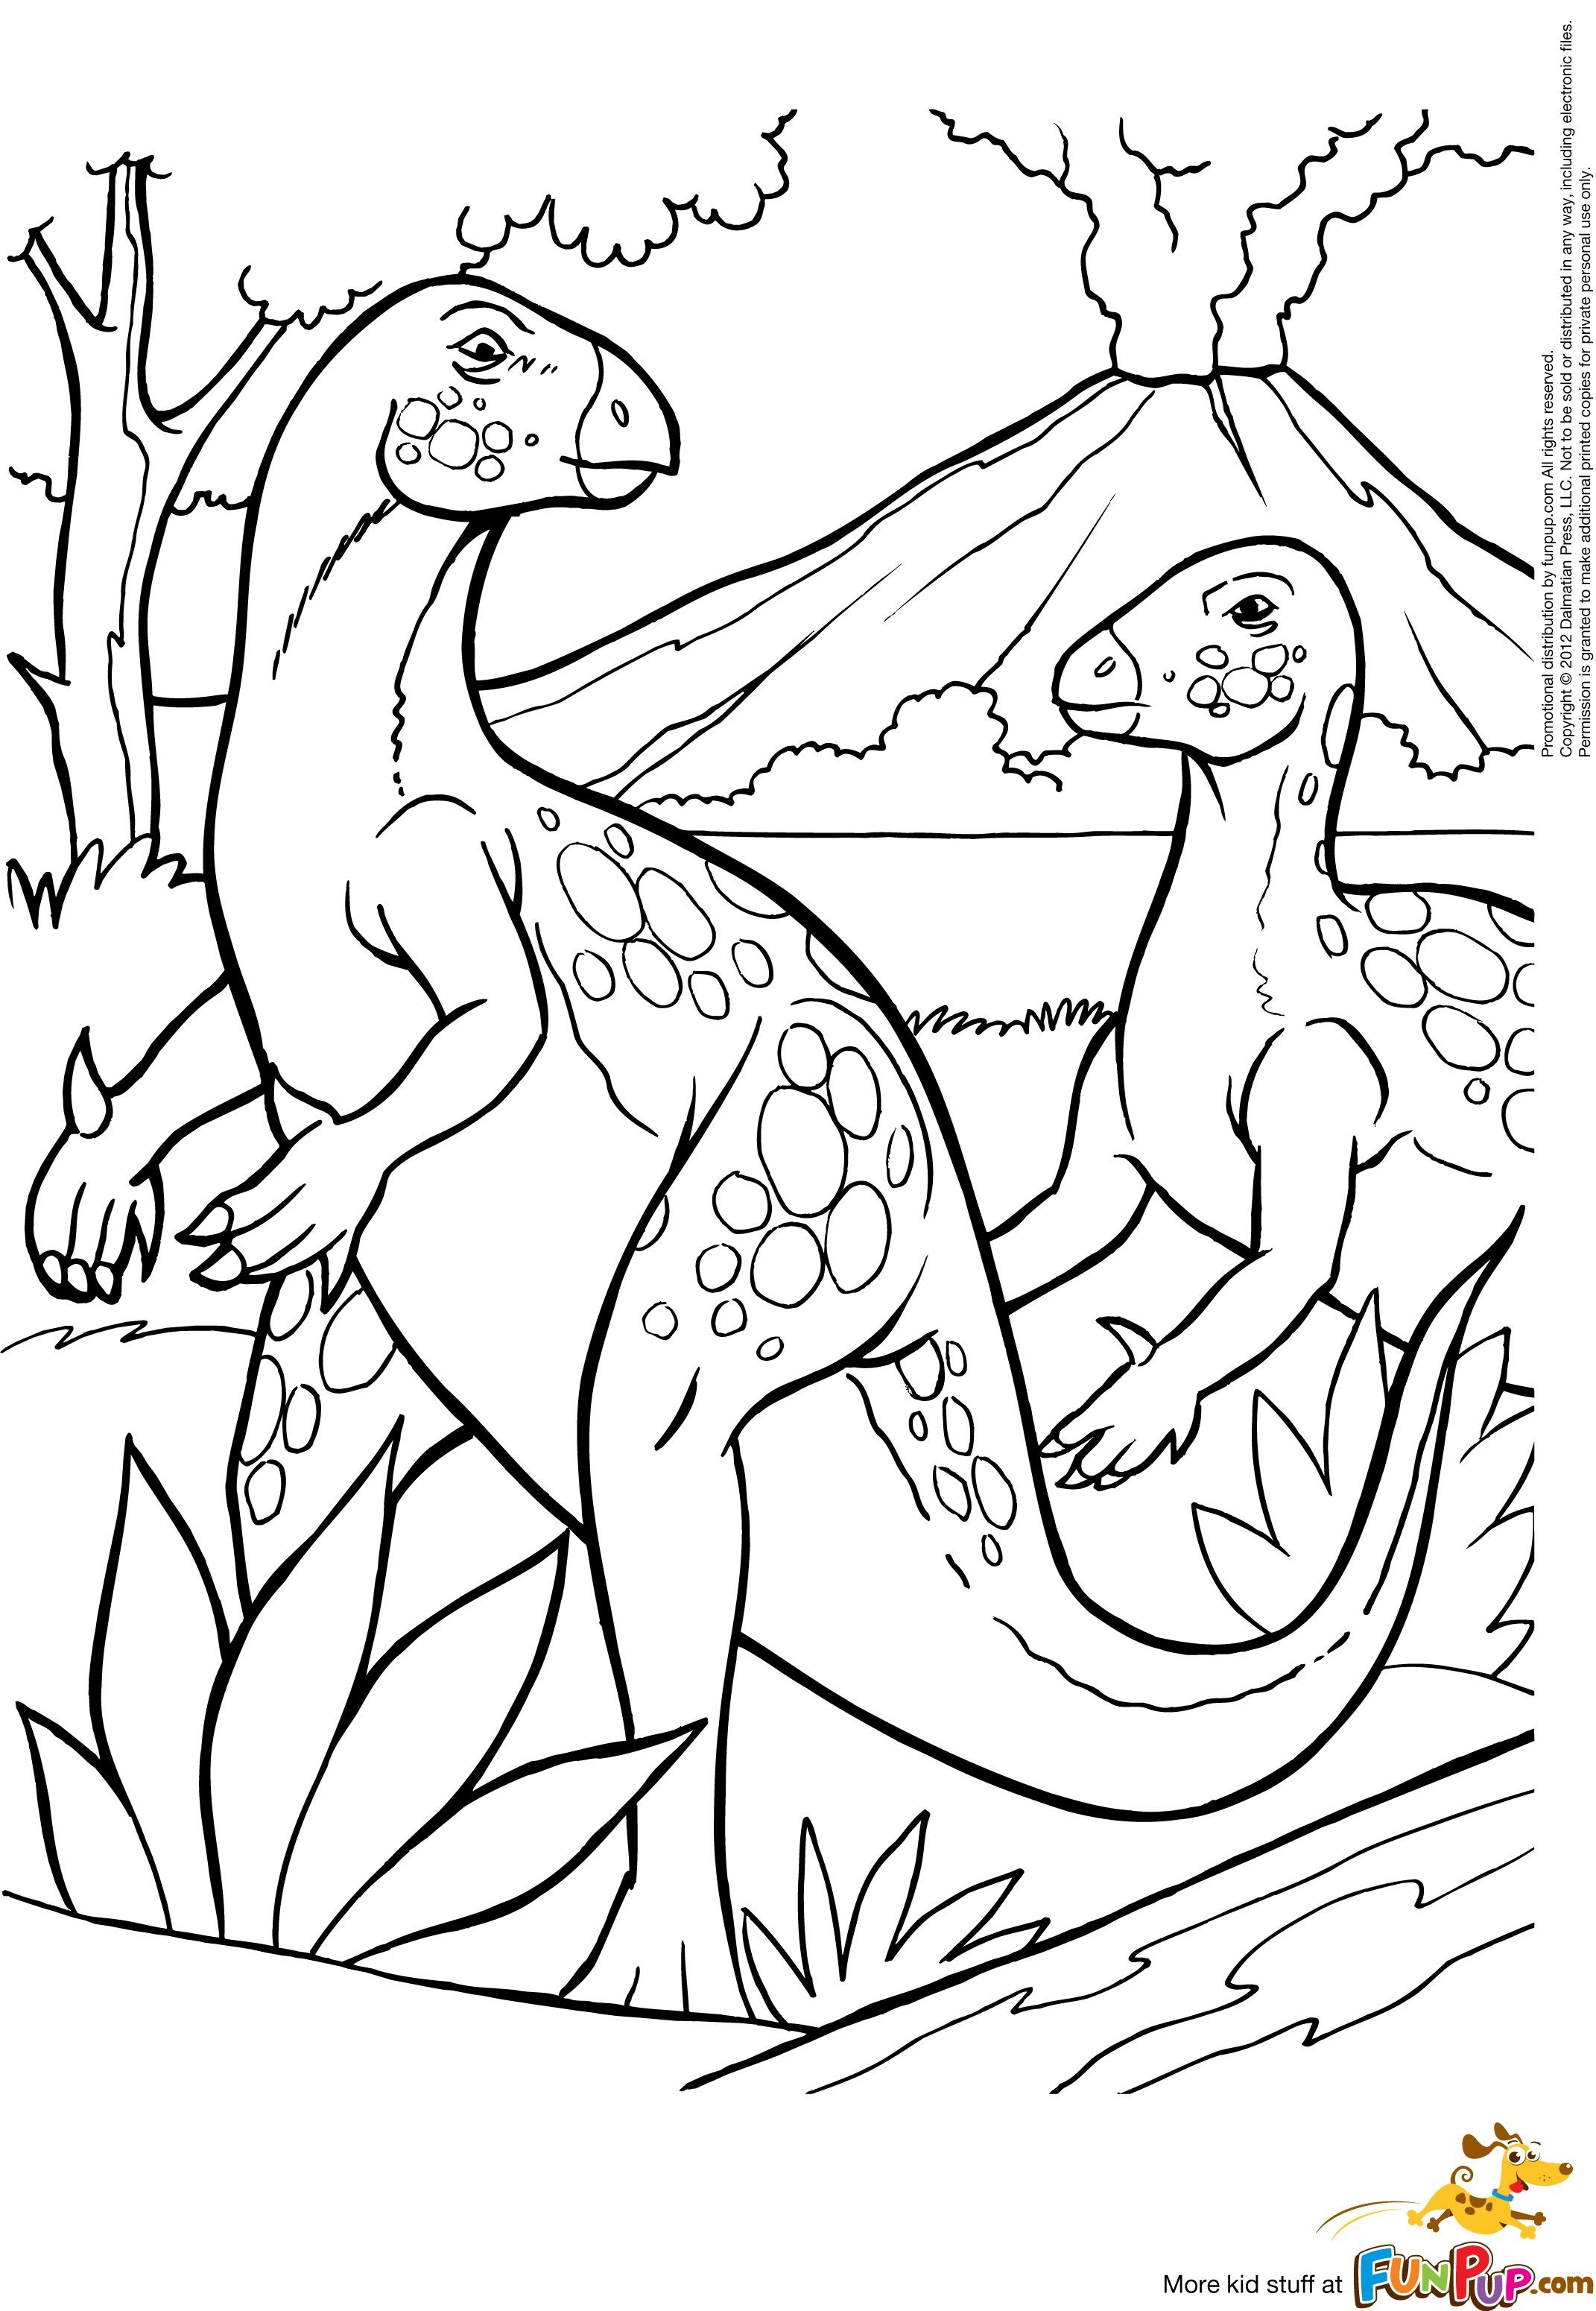 Dinosaurs with Volcano 0.00 Coloring pages nature